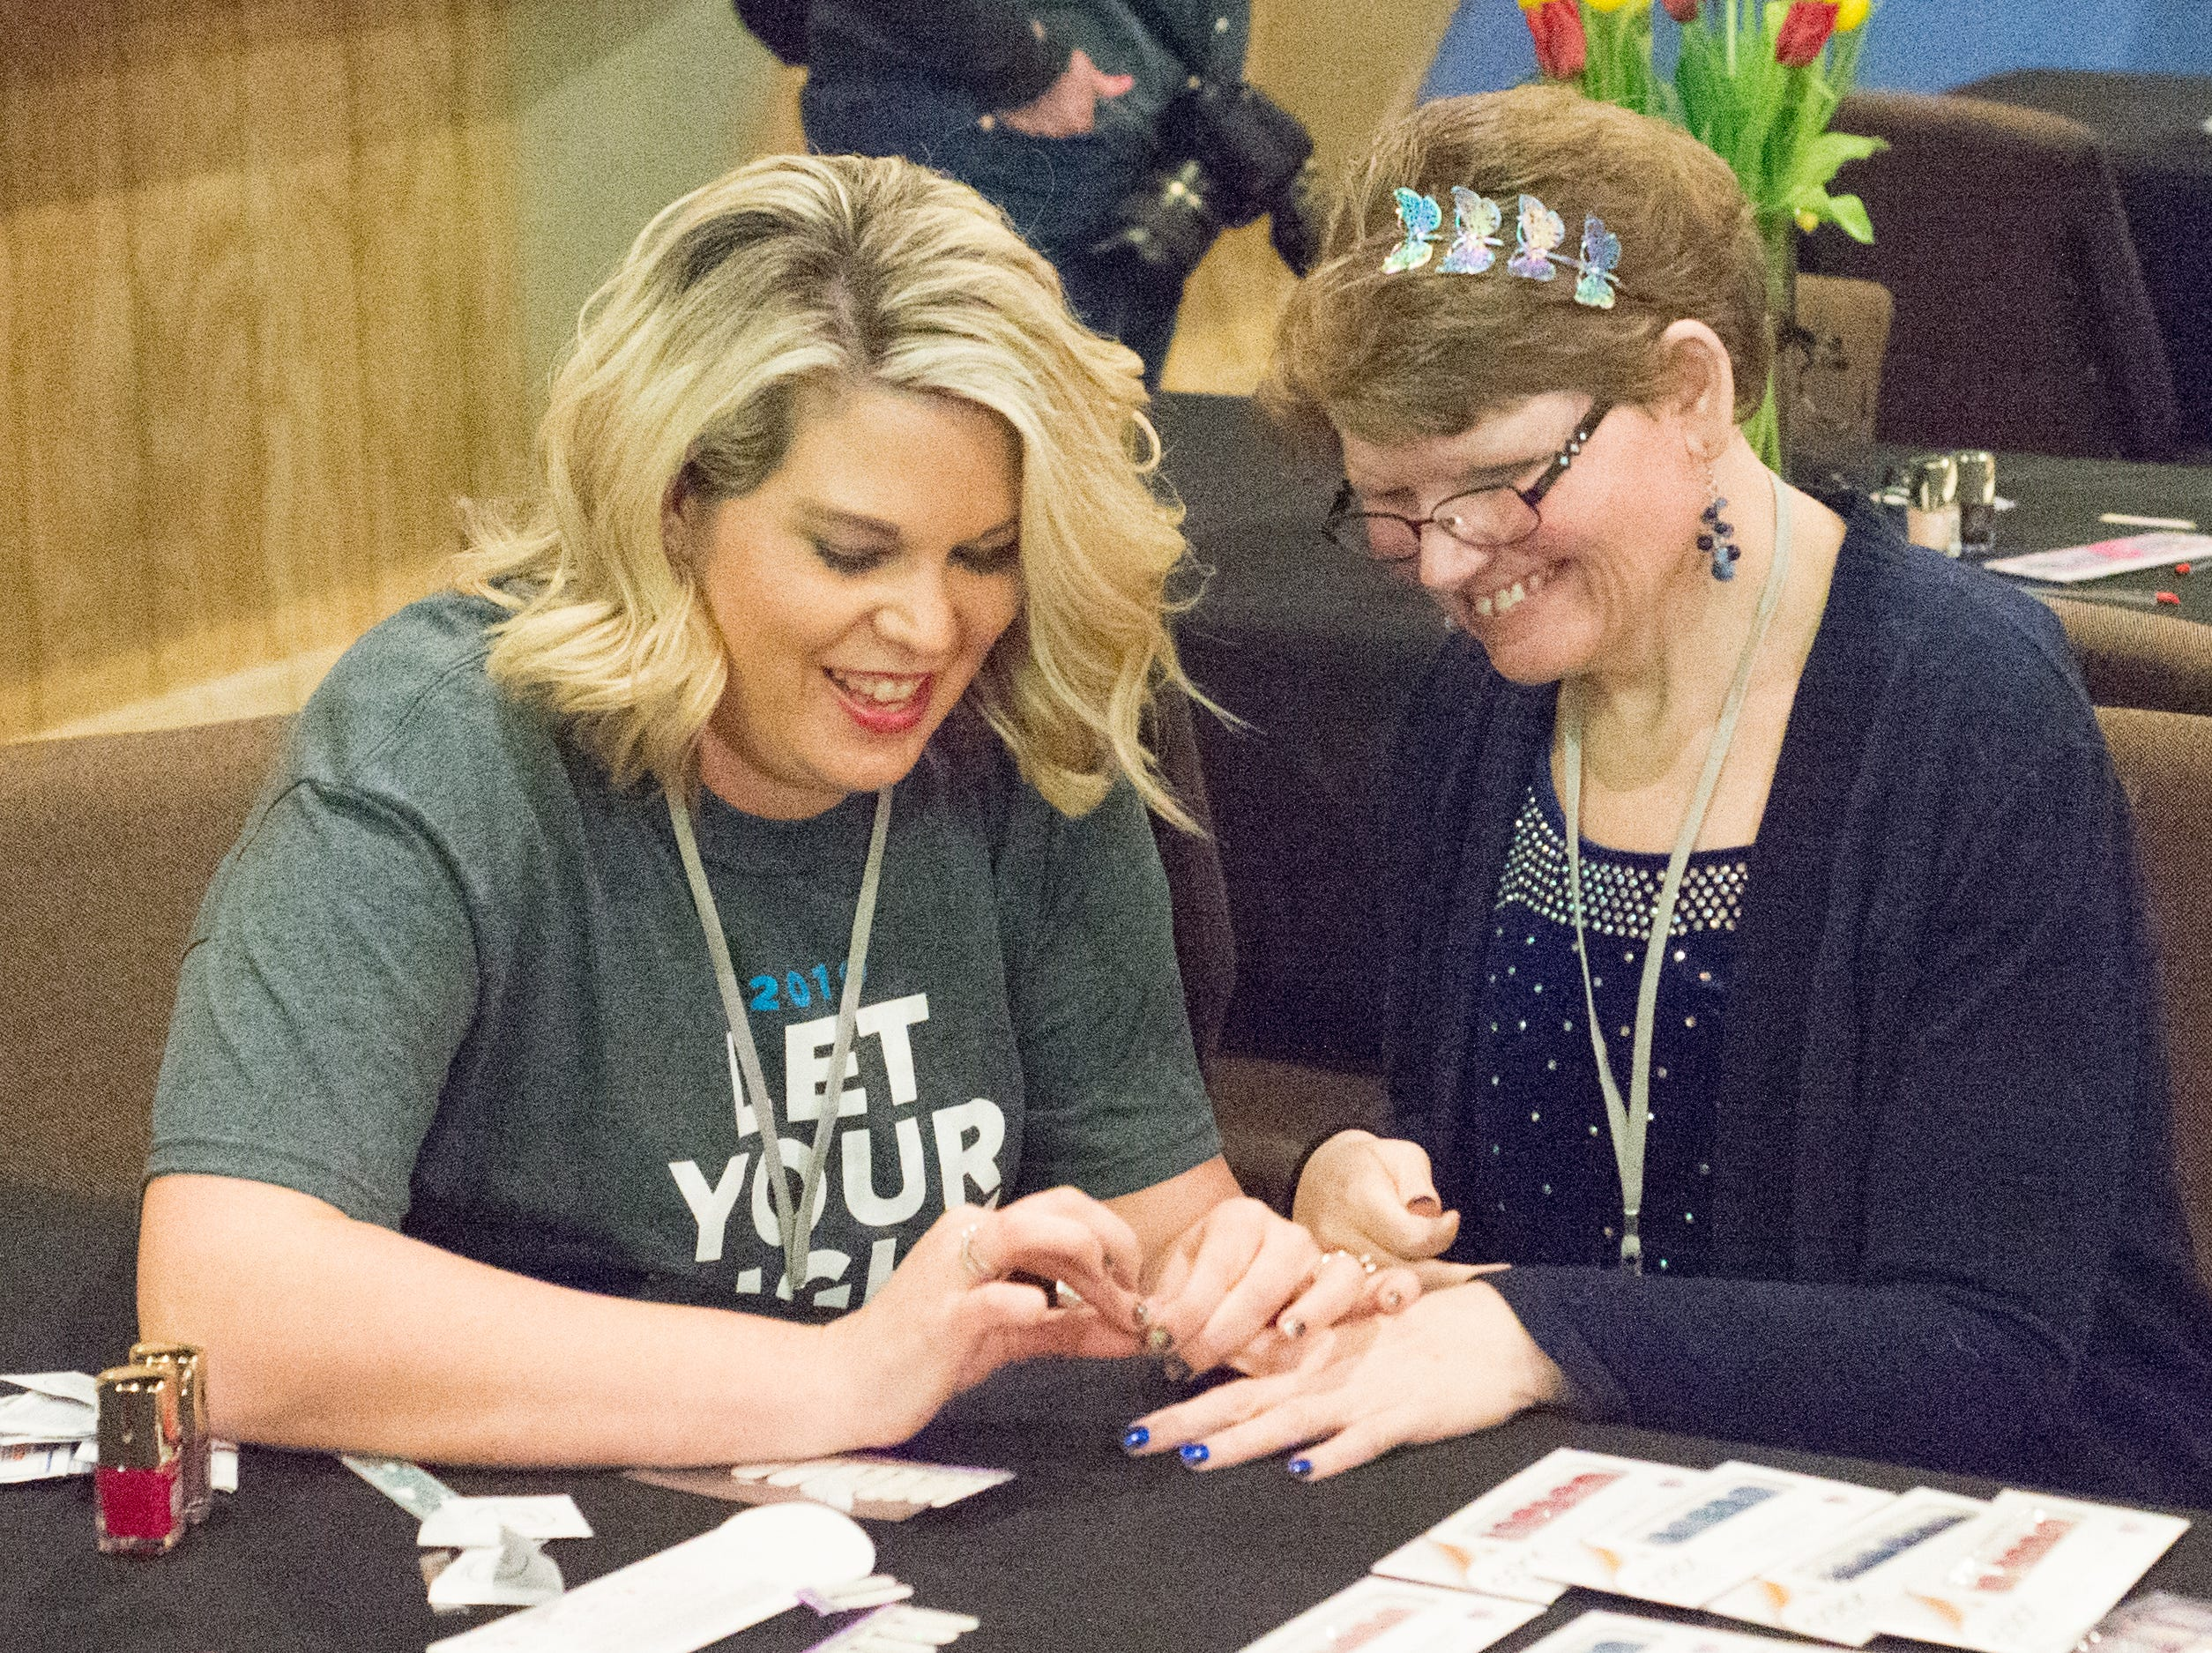 Ciji Gilley enjoys helping Jennifer Denson get ready for the Night to Shine event held at NorthField Church in Gallatin on Friday, Feb, 8.